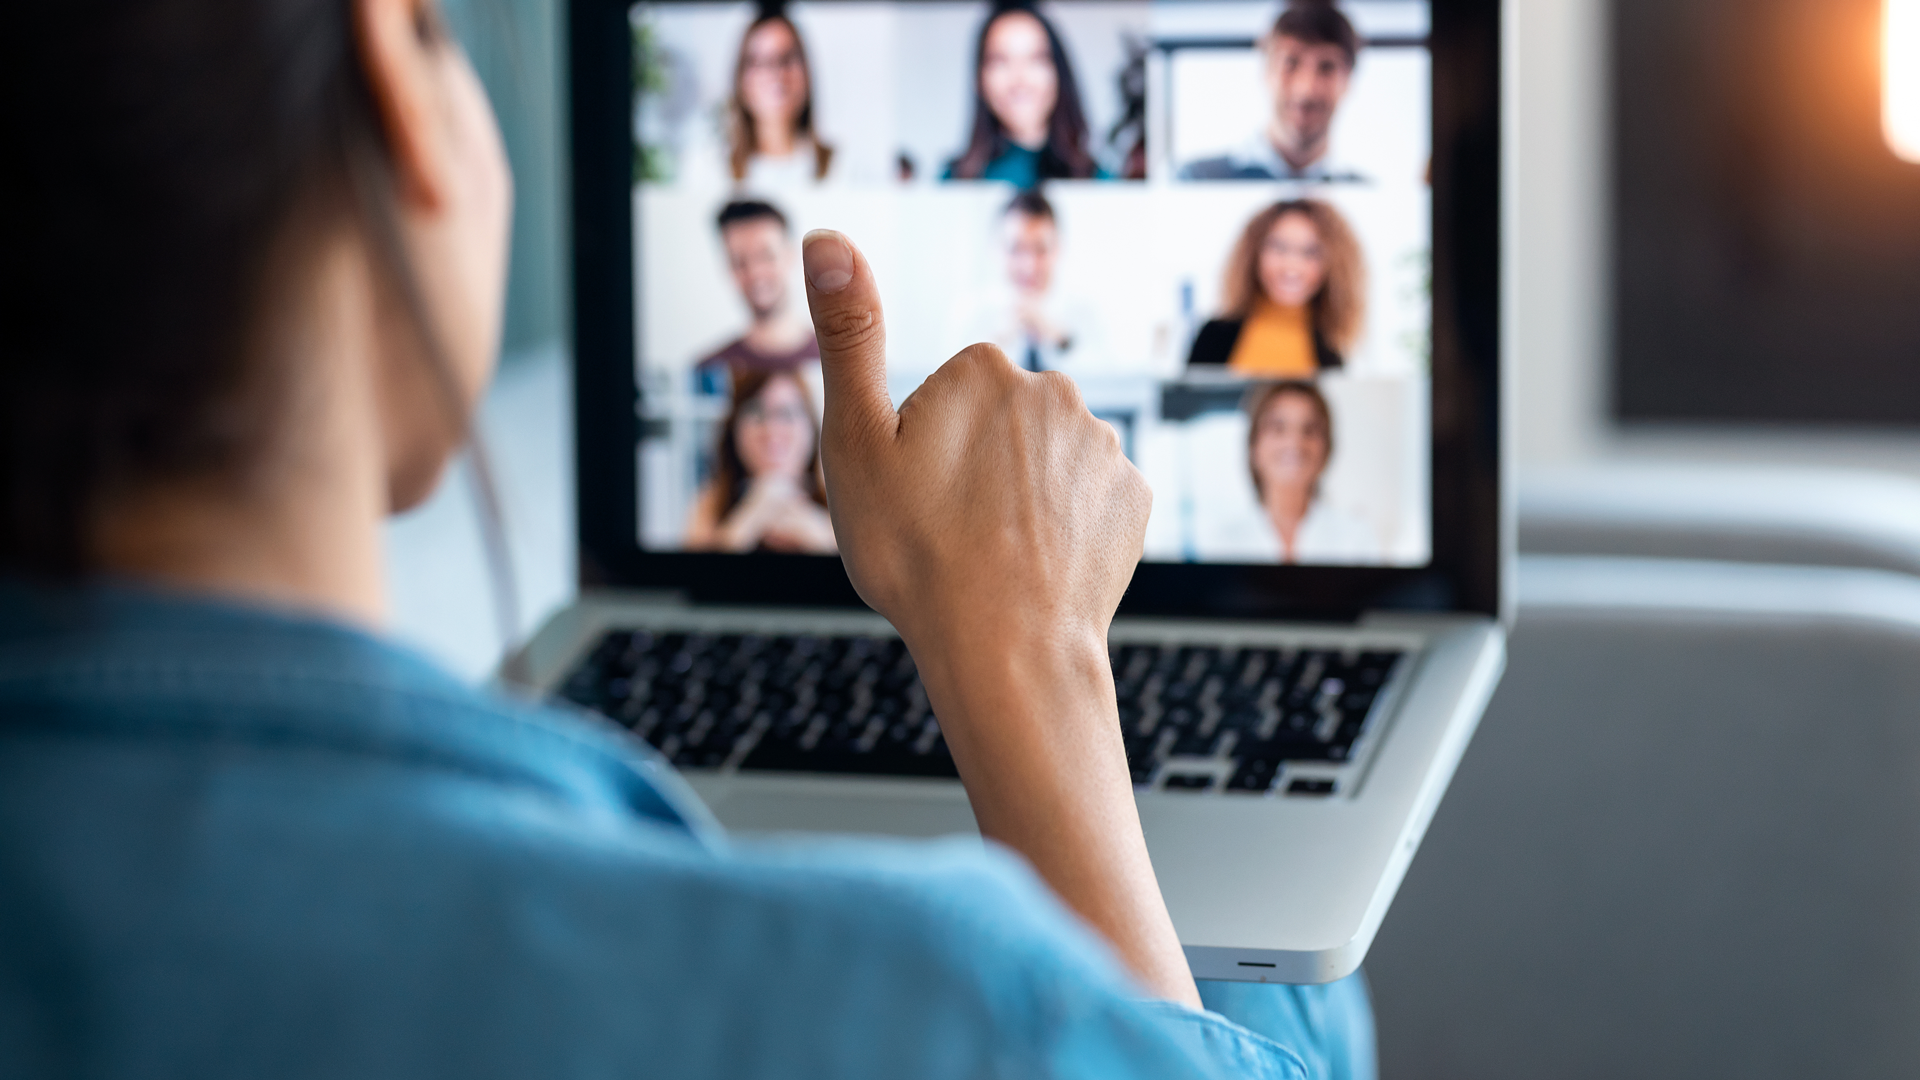 A remote meeting participant gives a thumbs up while facing her laptop. Video call participants can been seen on the laptop's screen.